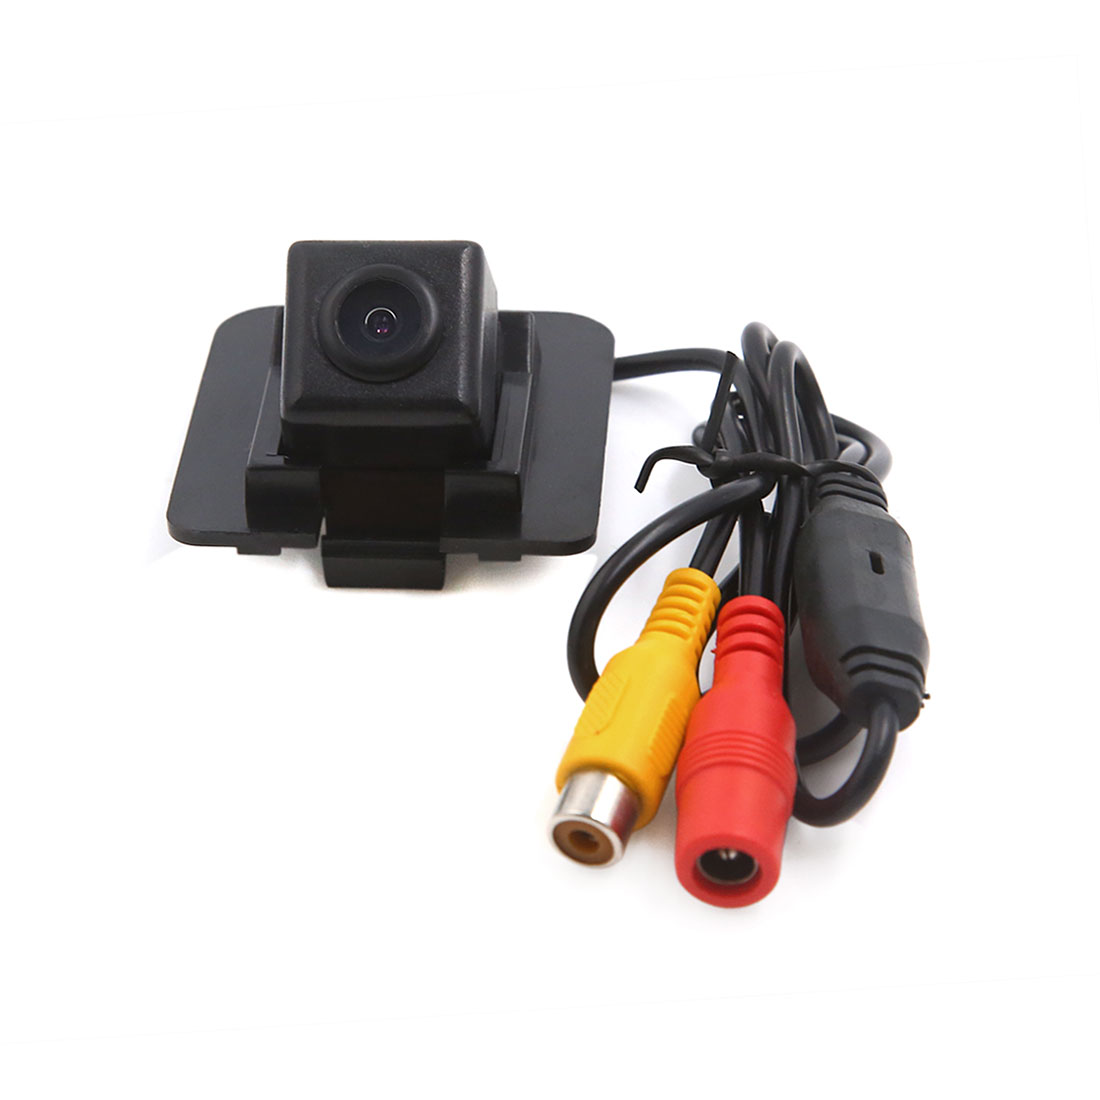 Waterproof 170 Degree HD Rear View Backup Parking Camera for Mercedes Benz S-Class